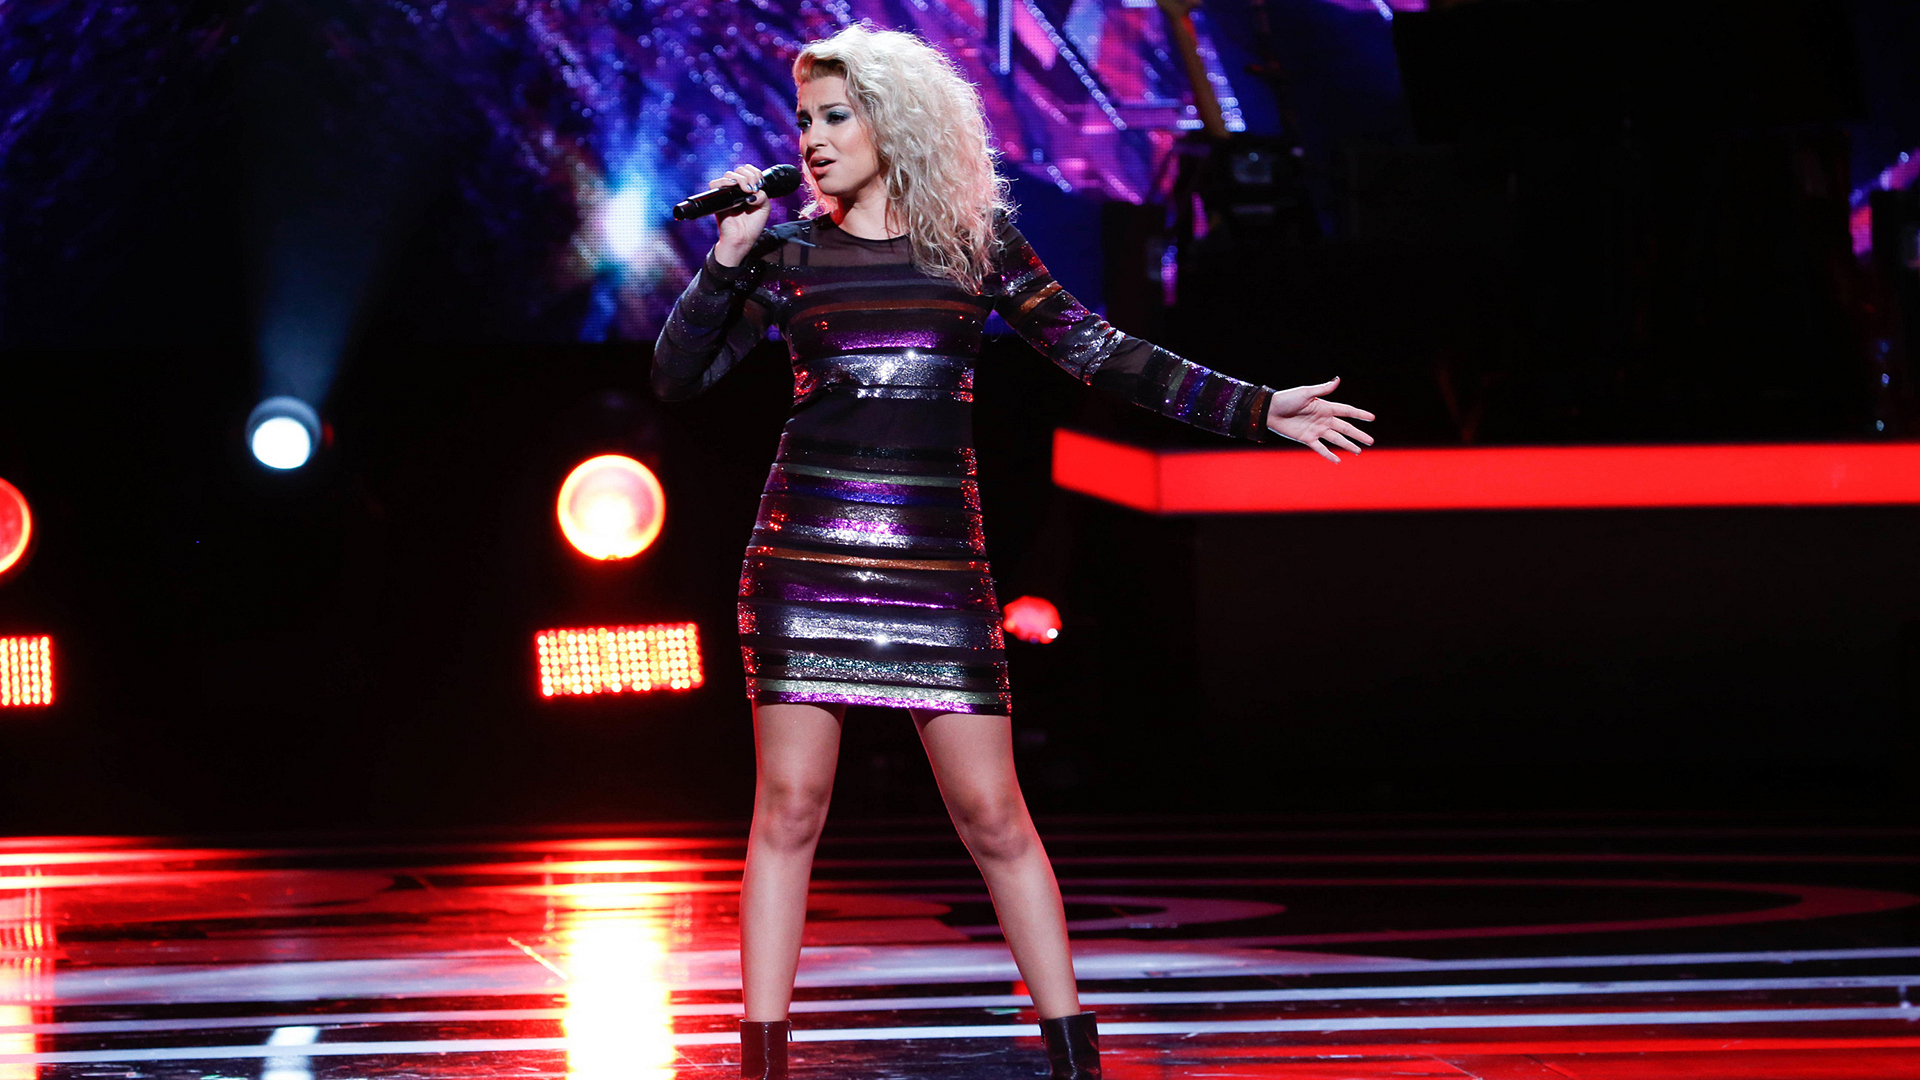 Tori Kelly performs as part of the opening medley at Bee Gees Tribute